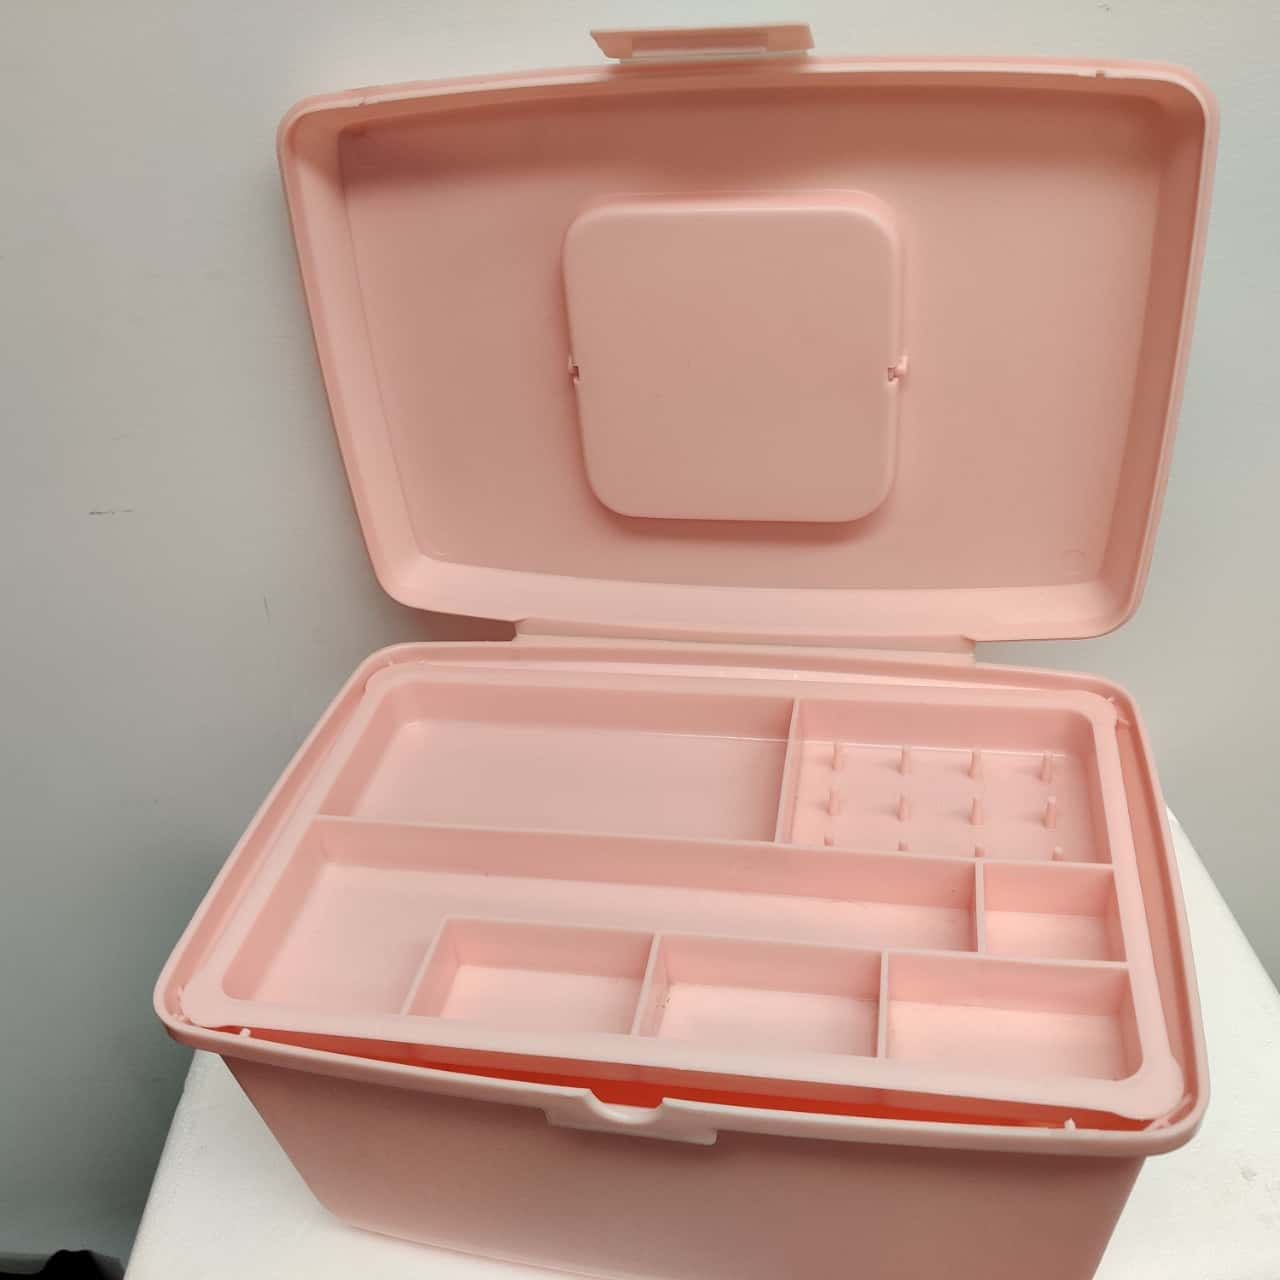 Singer Sewing Machine Box with Insert - Vintage Plastic